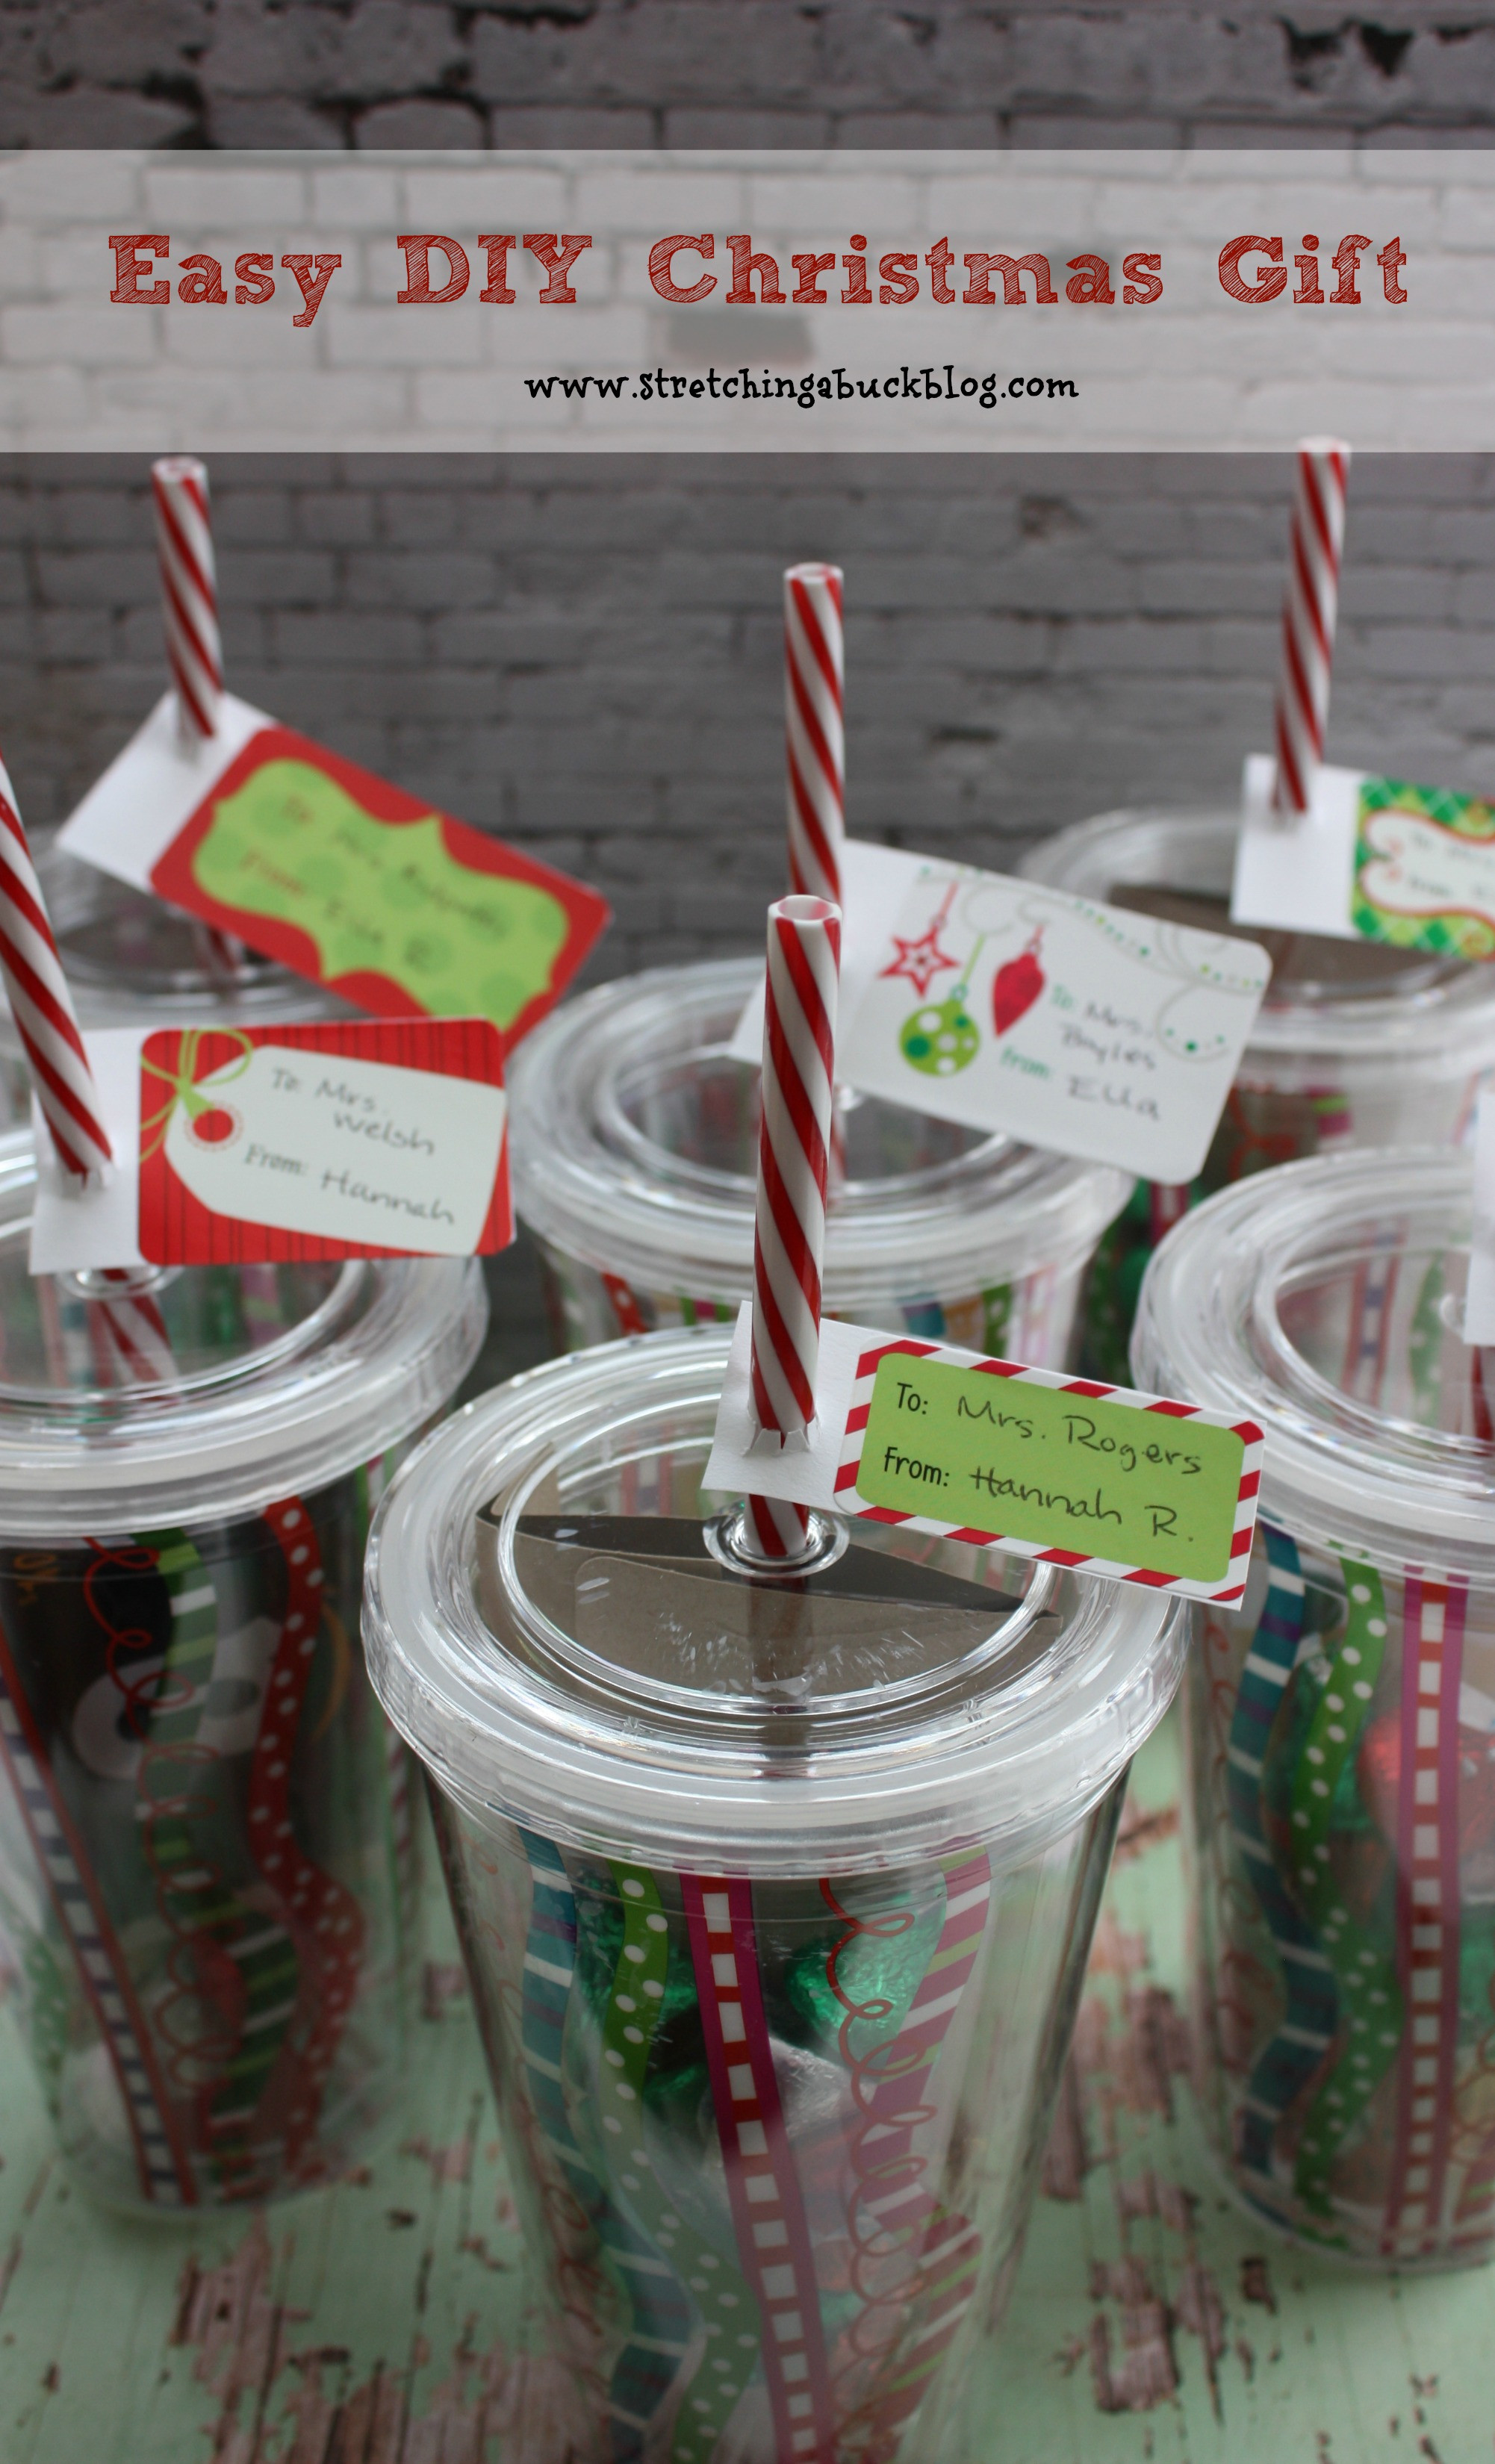 Best ideas about DIY Christmas Present Ideas . Save or Pin Easy DIY Christmas Gift Idea for Teachers Friends More Now.